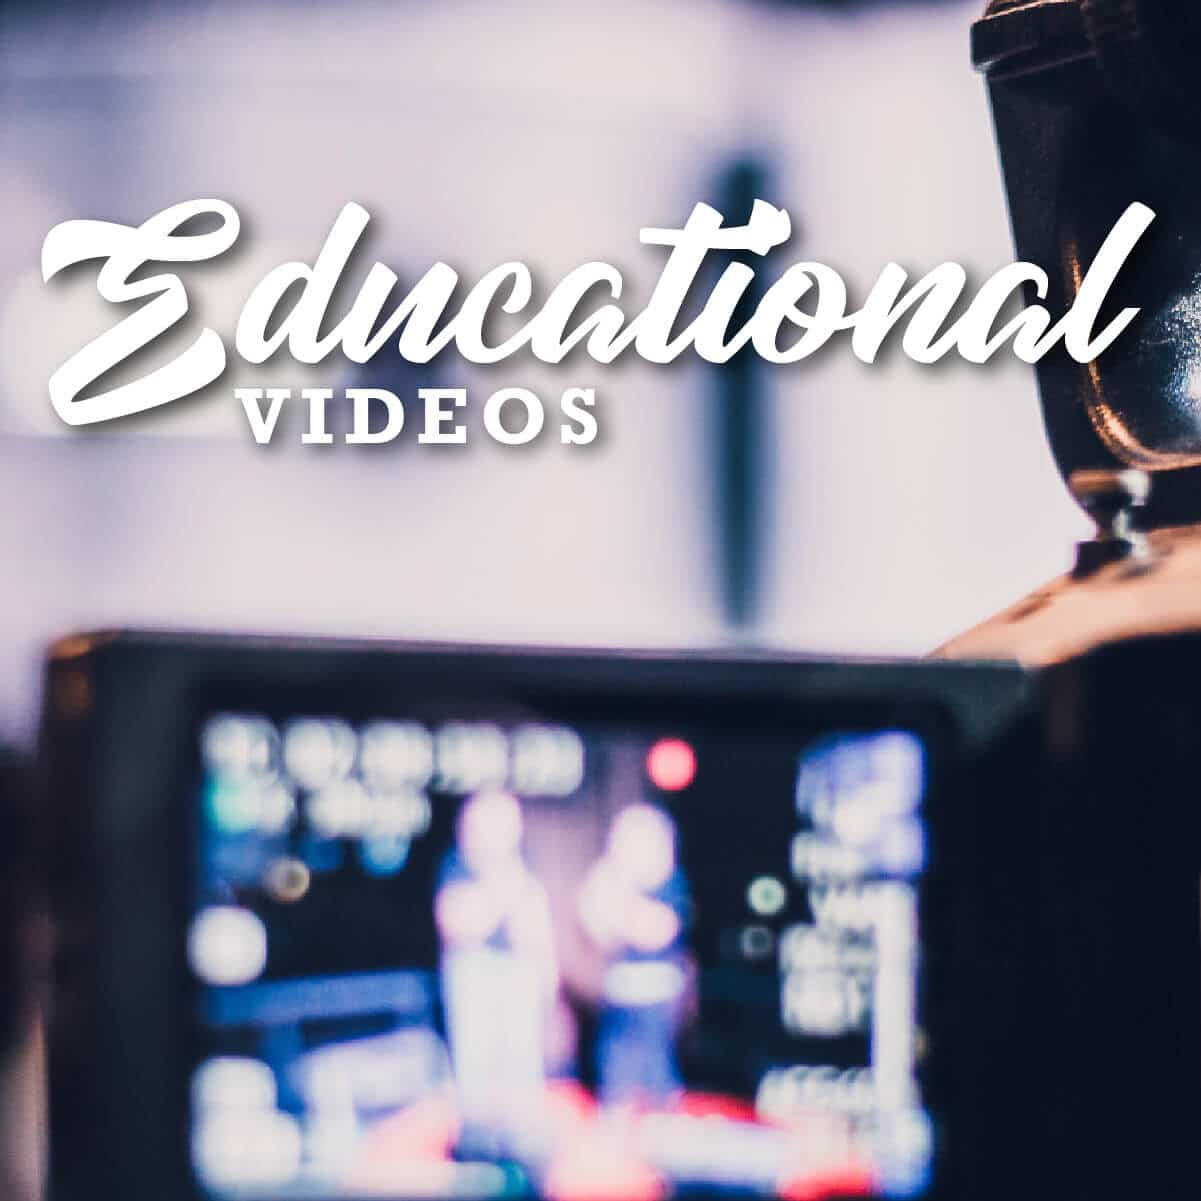 Challenge Coin Educational Videos